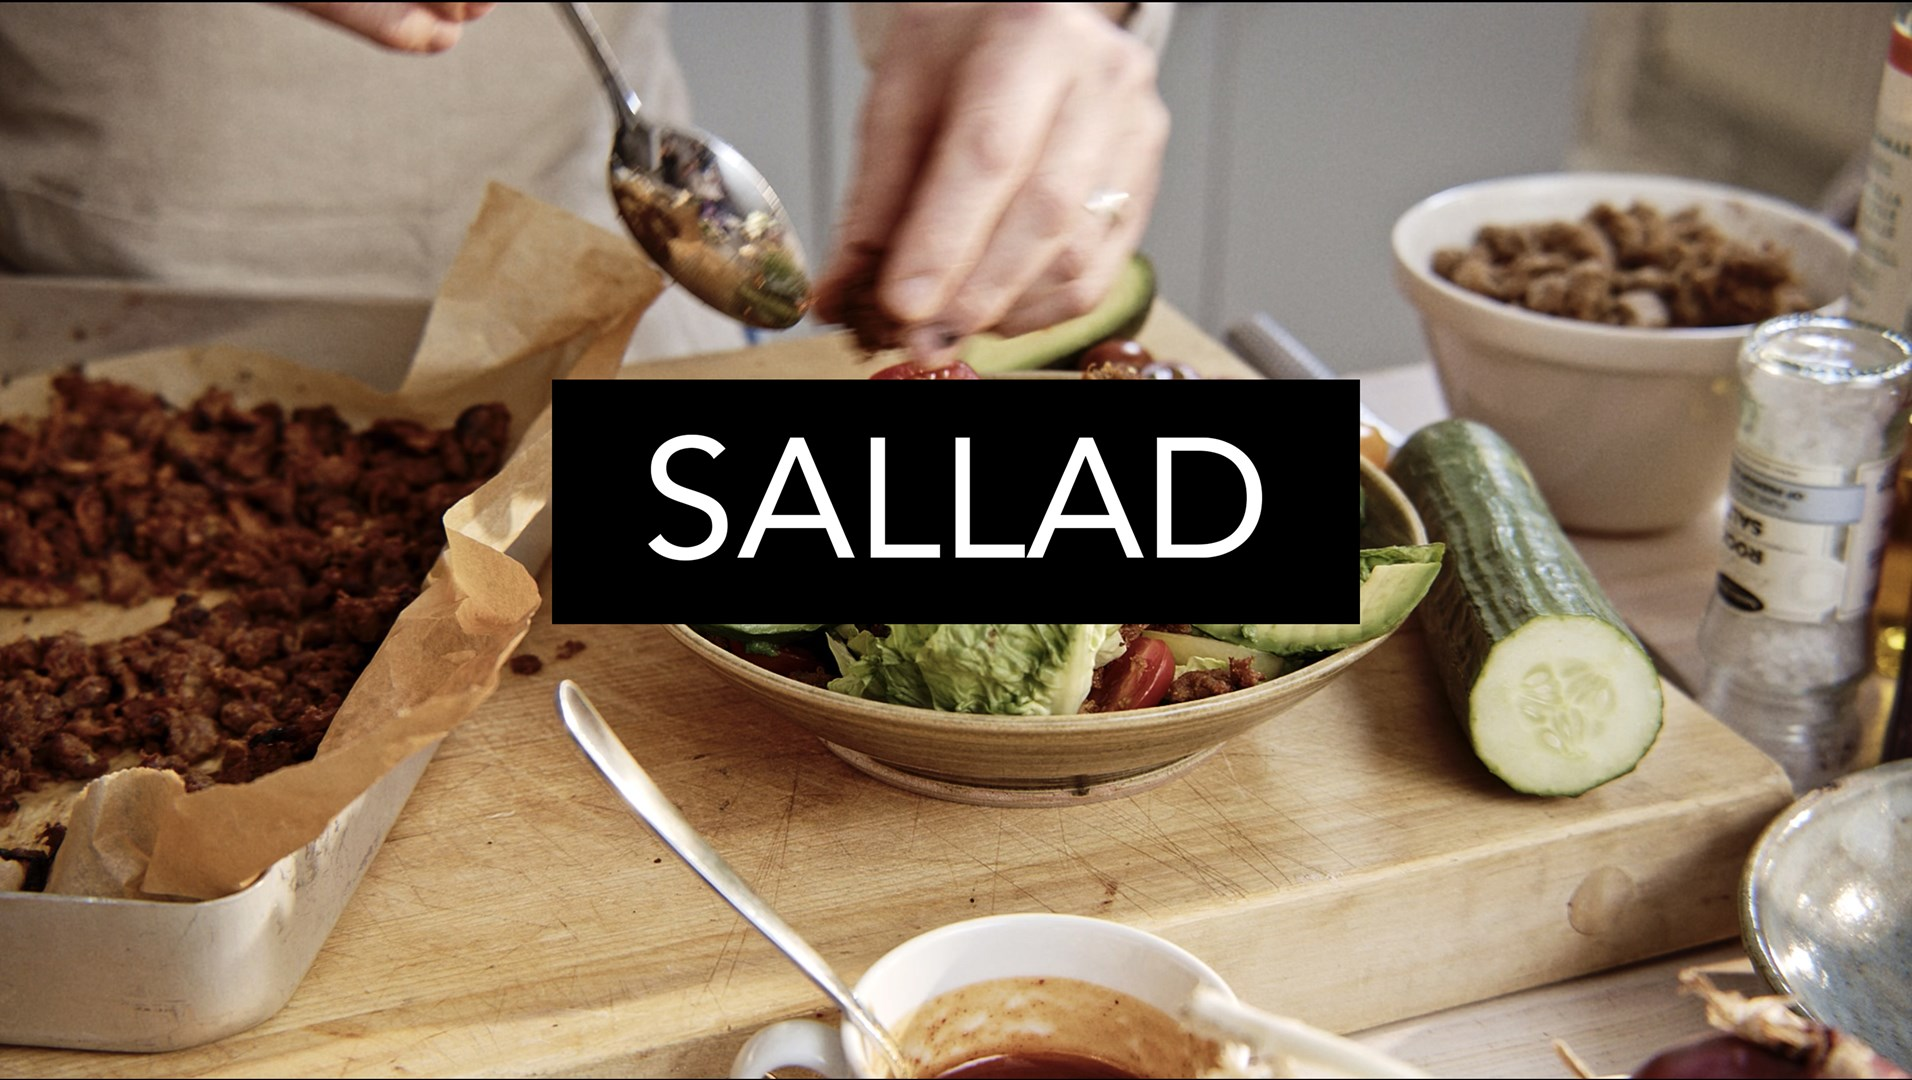 Pulled Oats Sallad